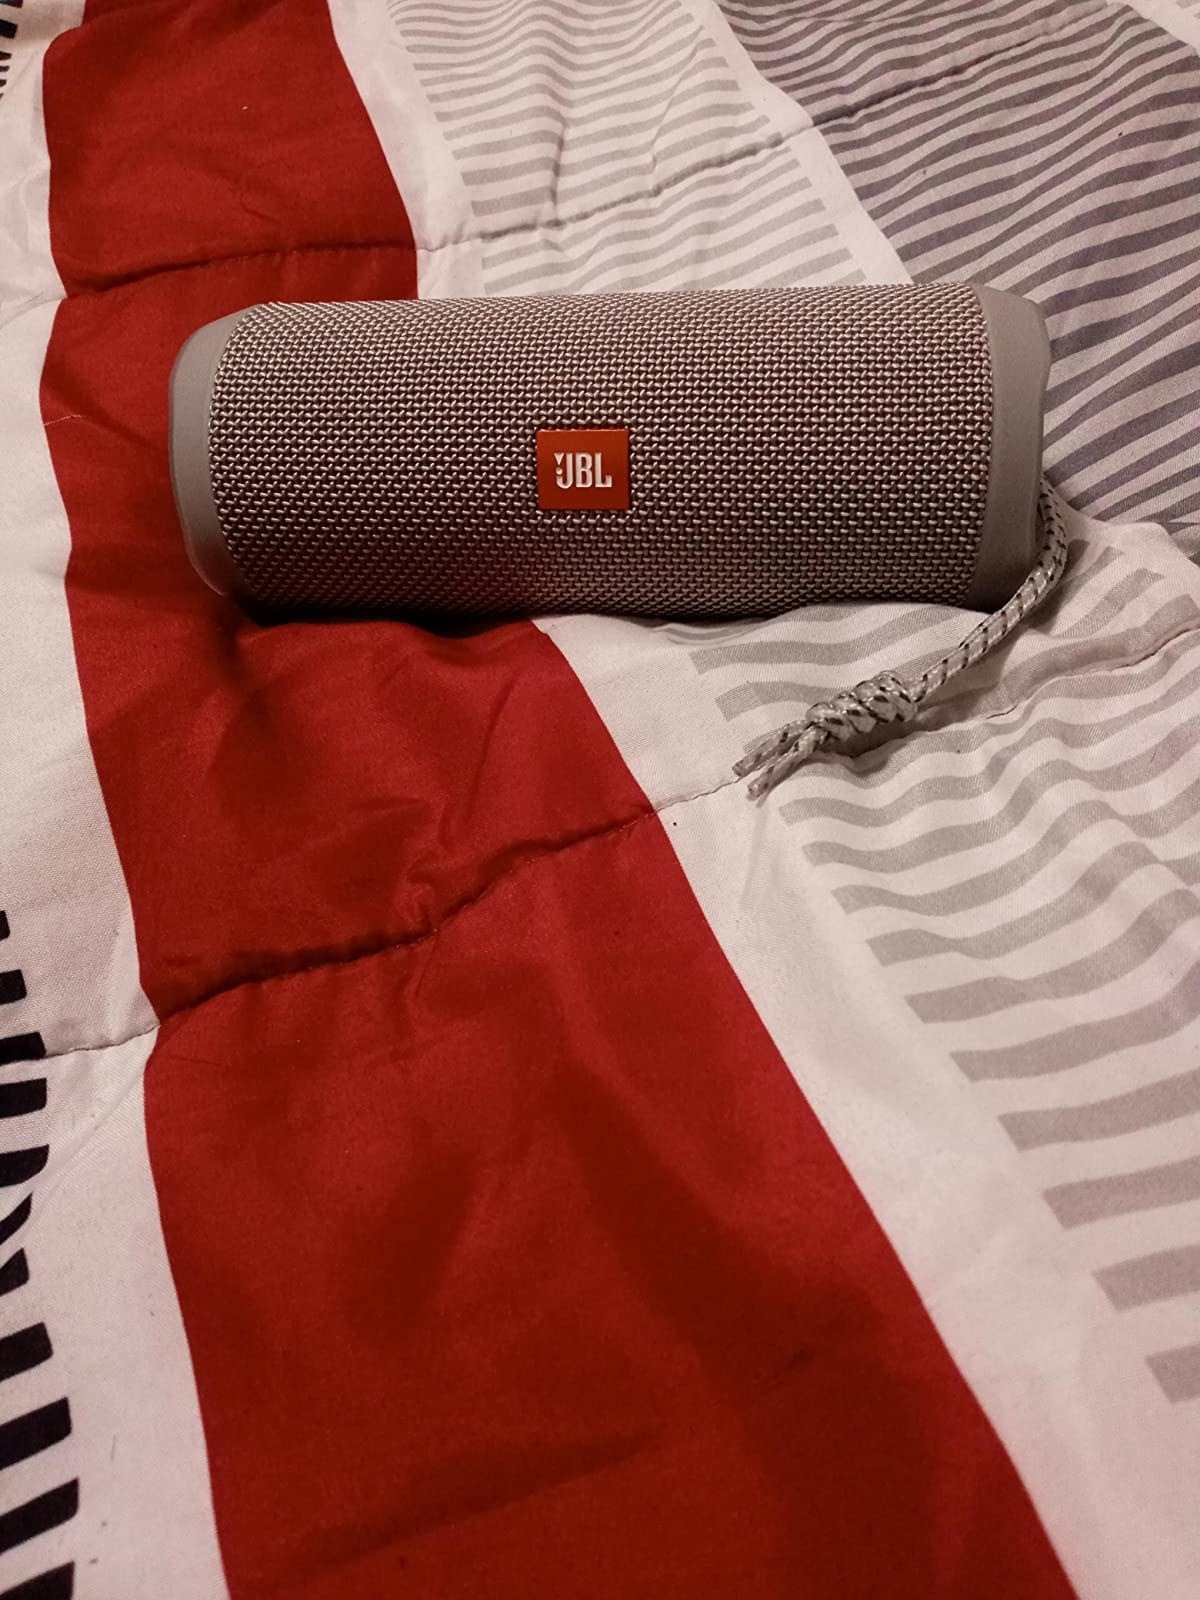 reviewer photo of the JBL speaker in gray on a bedspread